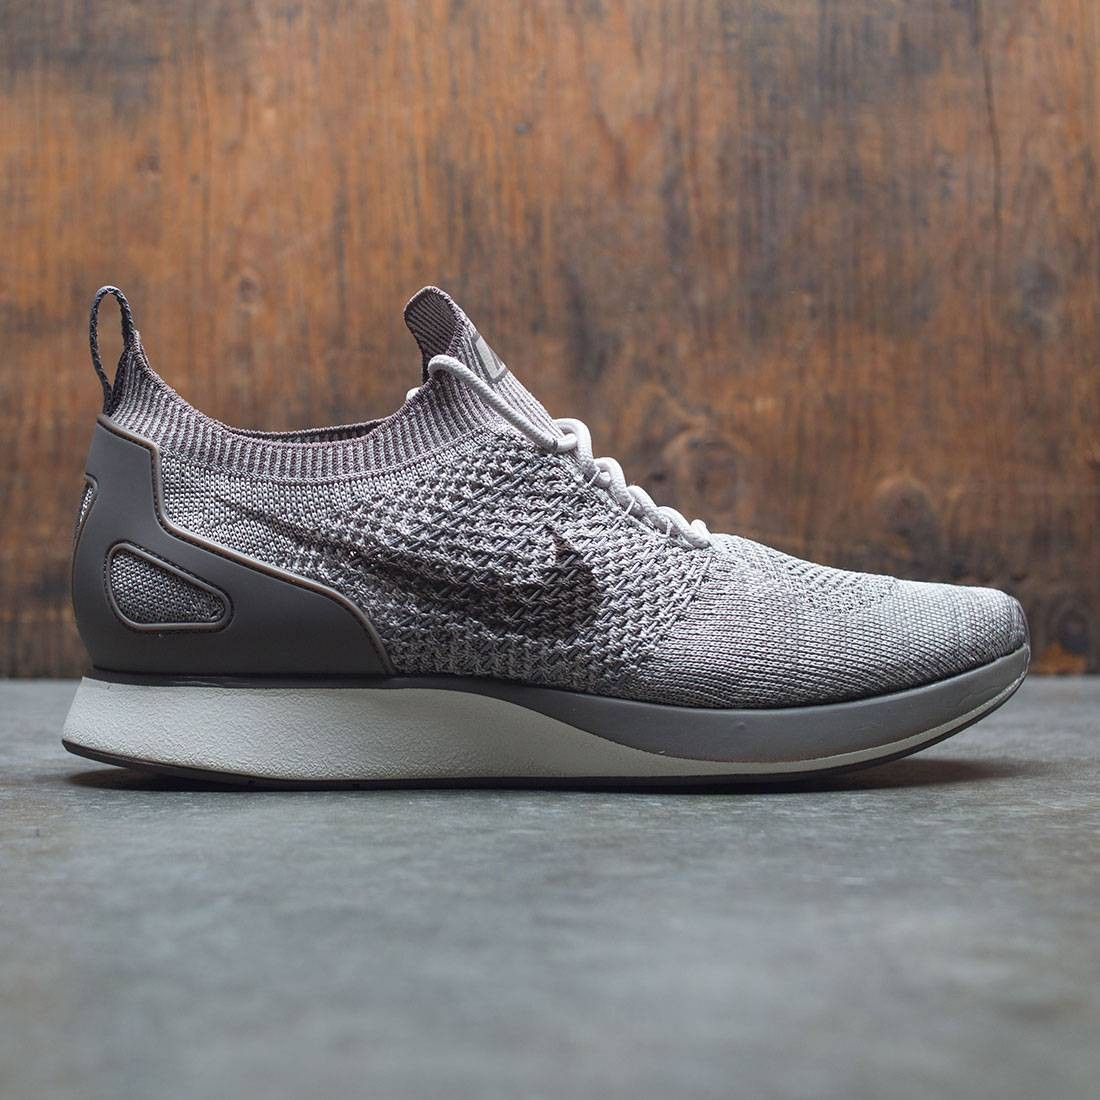 Nike Men Air Zoom Mariah Flyknit Racer (string / dark mushroom-light charcoal)